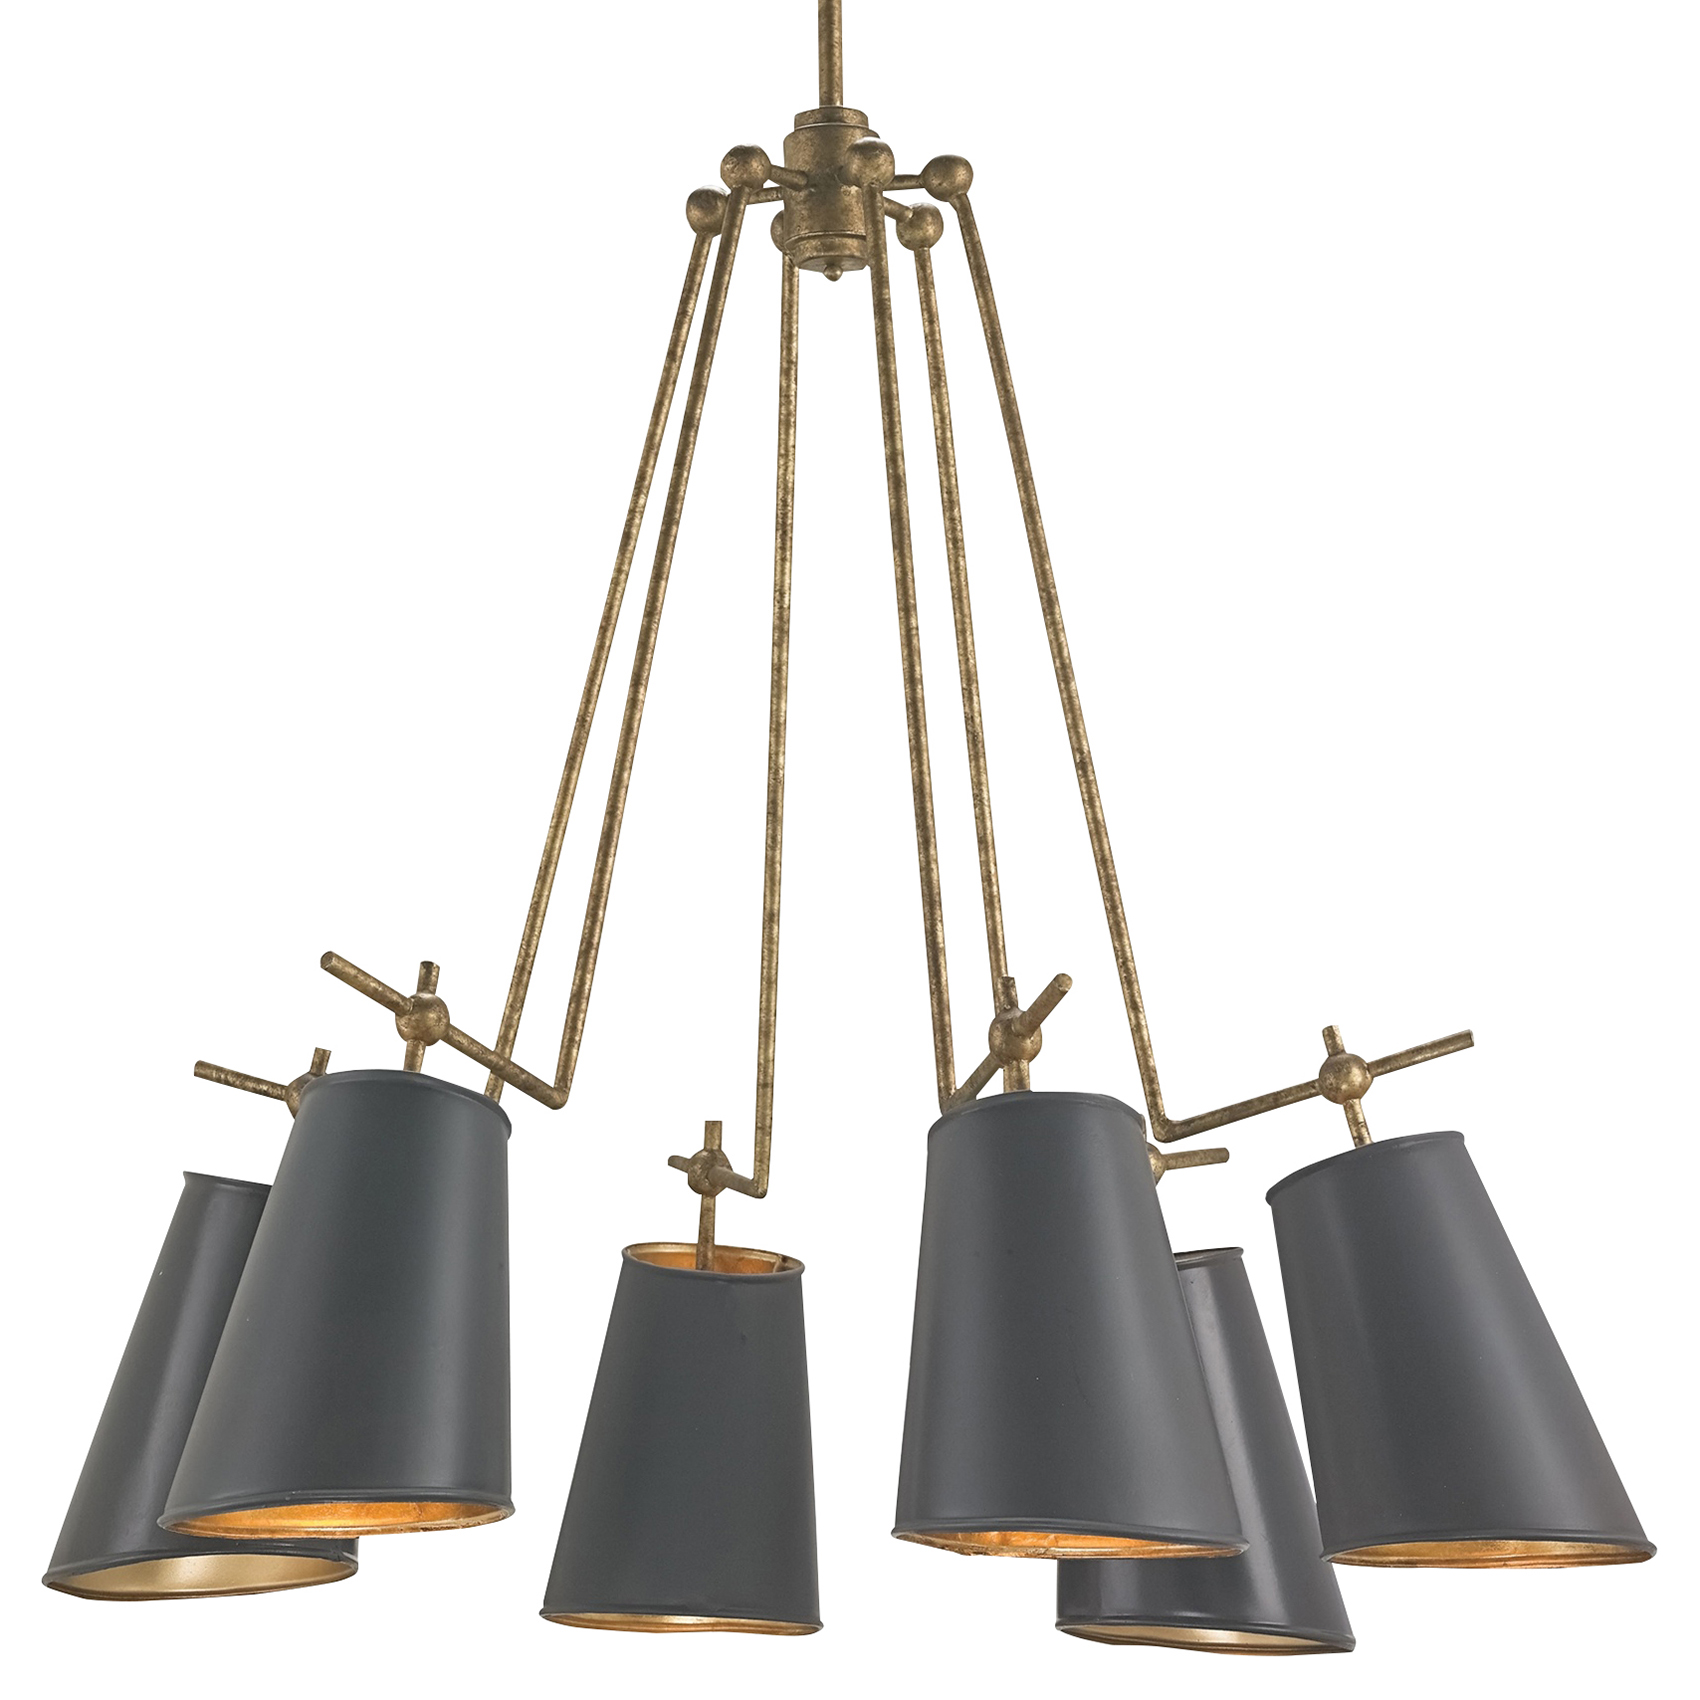 Cori Modern Antique Gold Arm Black Shade Chandelier - 30D